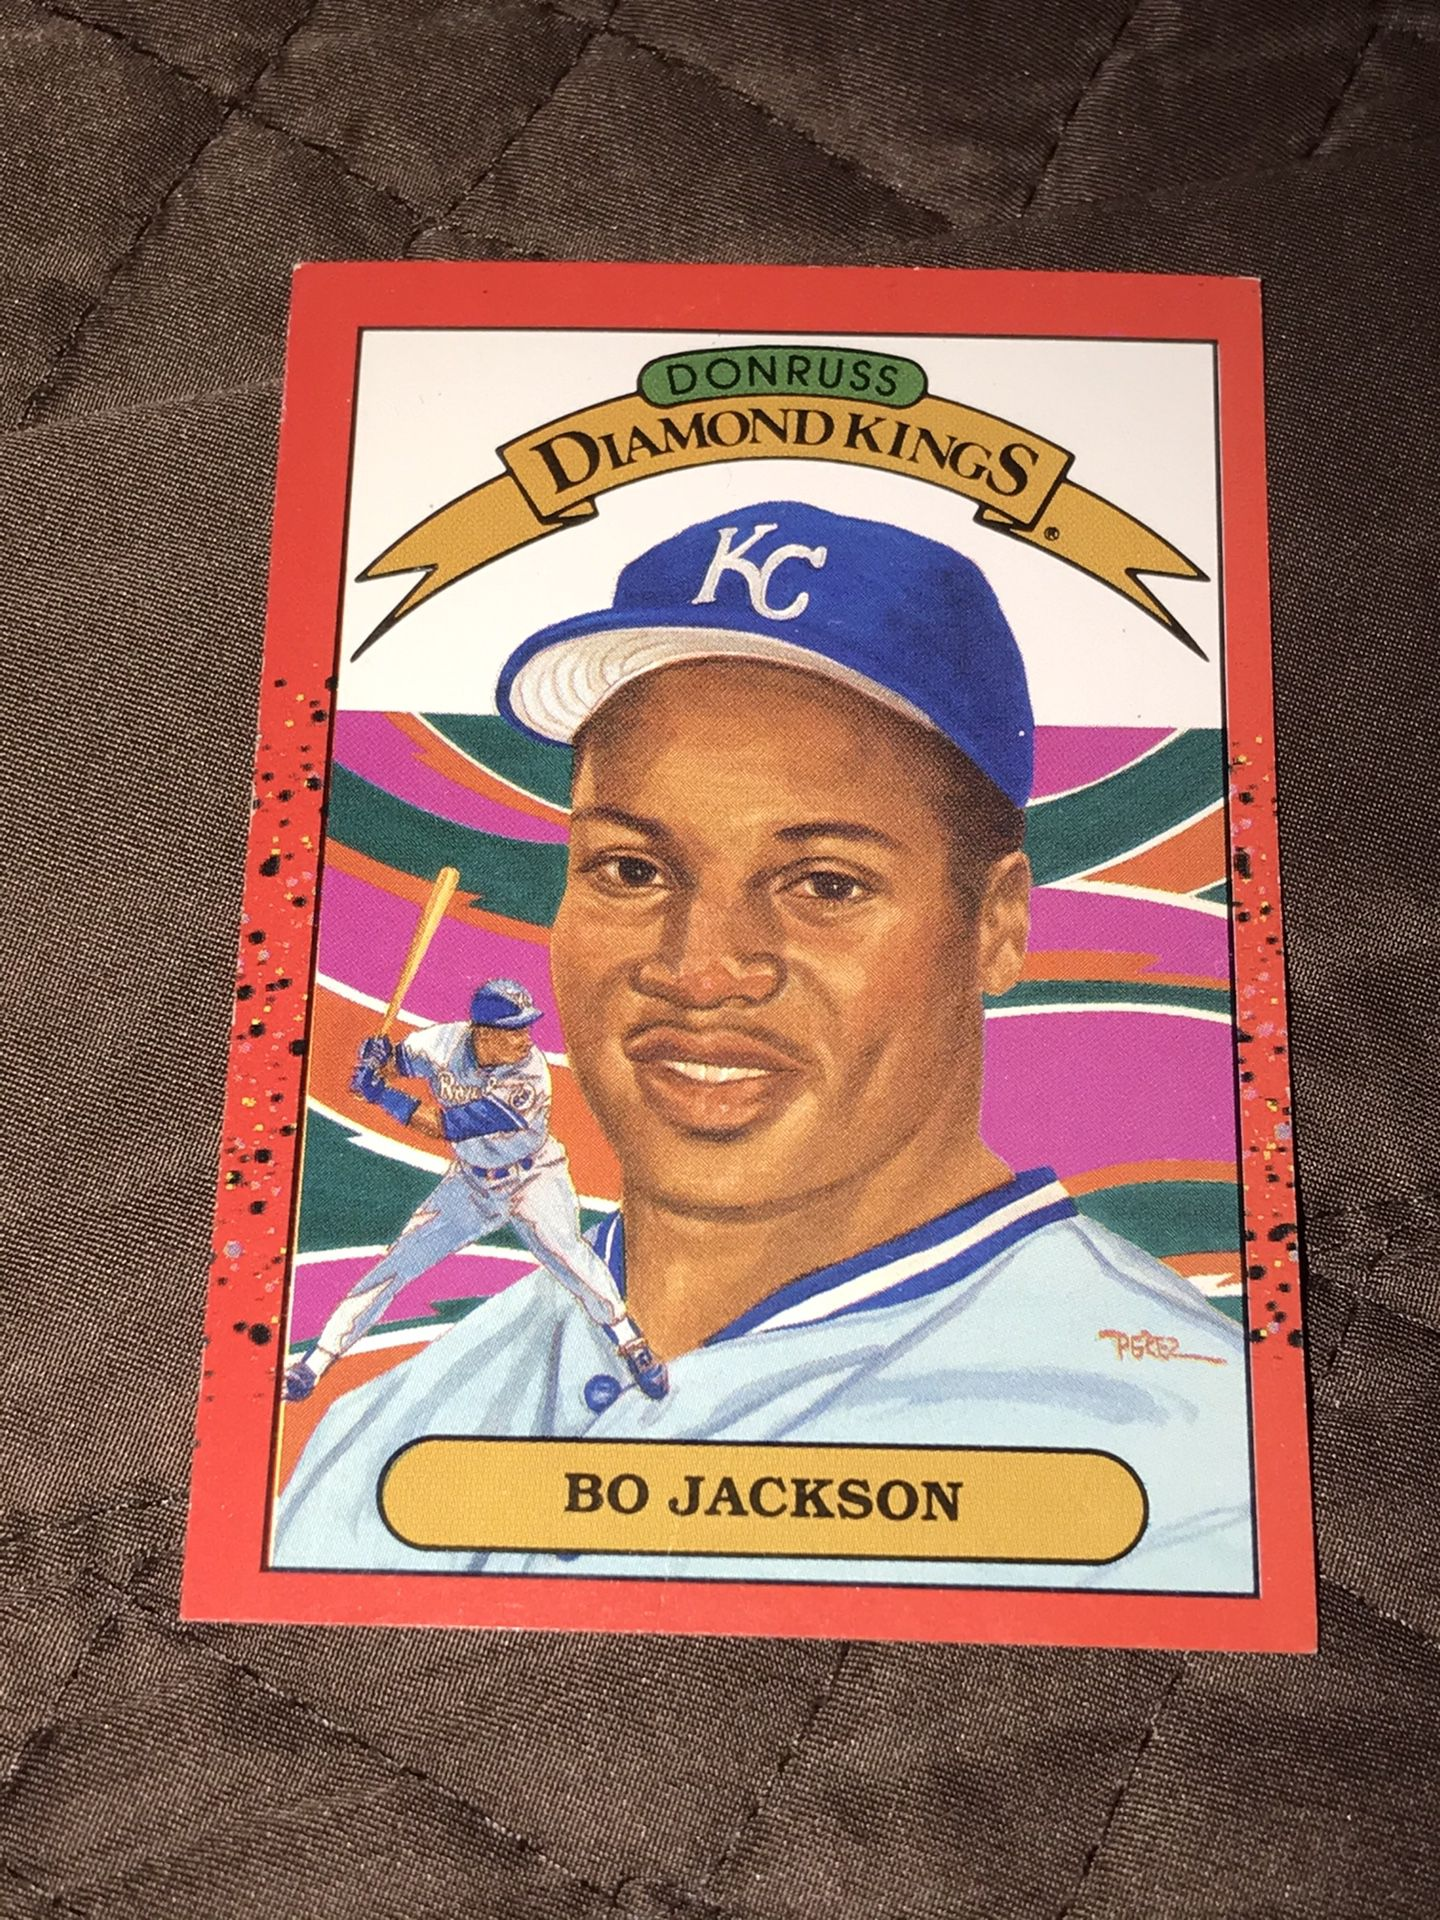 Sports cards collected in good condition.